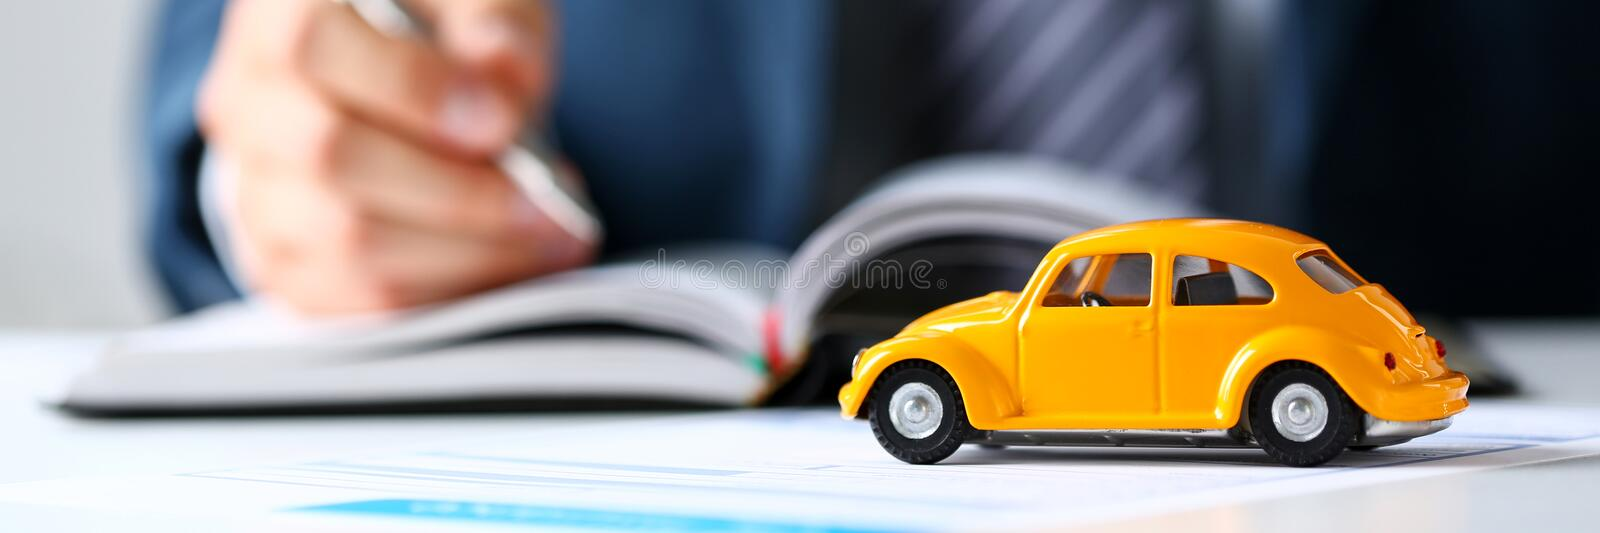 Unrecognizable yellow toy car on selling documents. Closeup with employee holding silver pen in background. Driver money loss prevention, carrier office, road stock photos